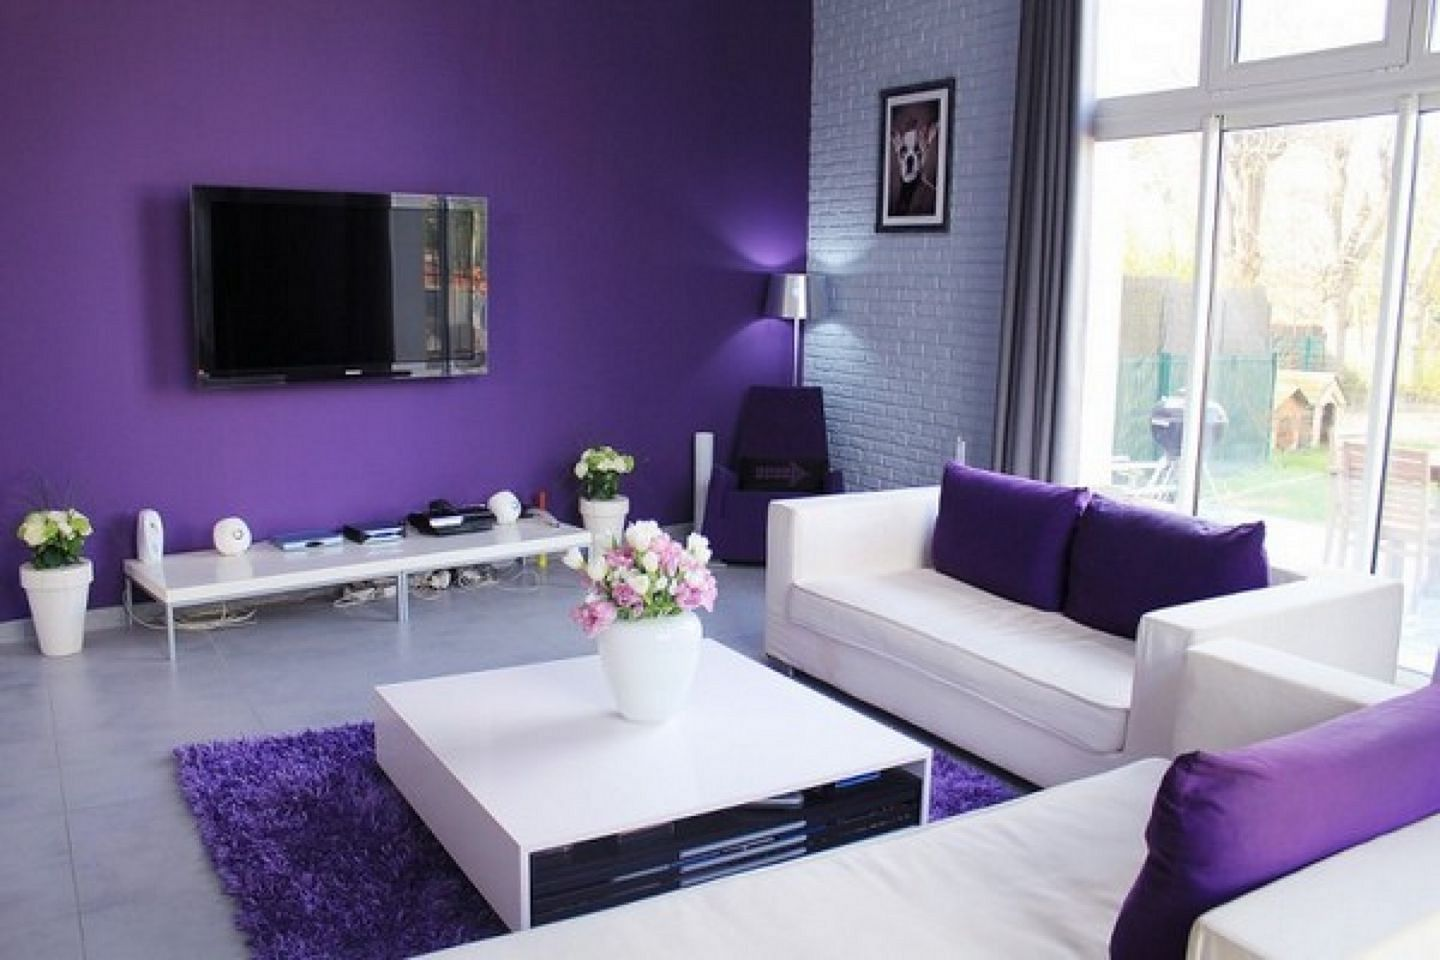 15 Gorgeous Living Room Green Purple Interior You Need To Try Decor It S Purple Living Room Home Decor Catalogs Living Room Color Schemes